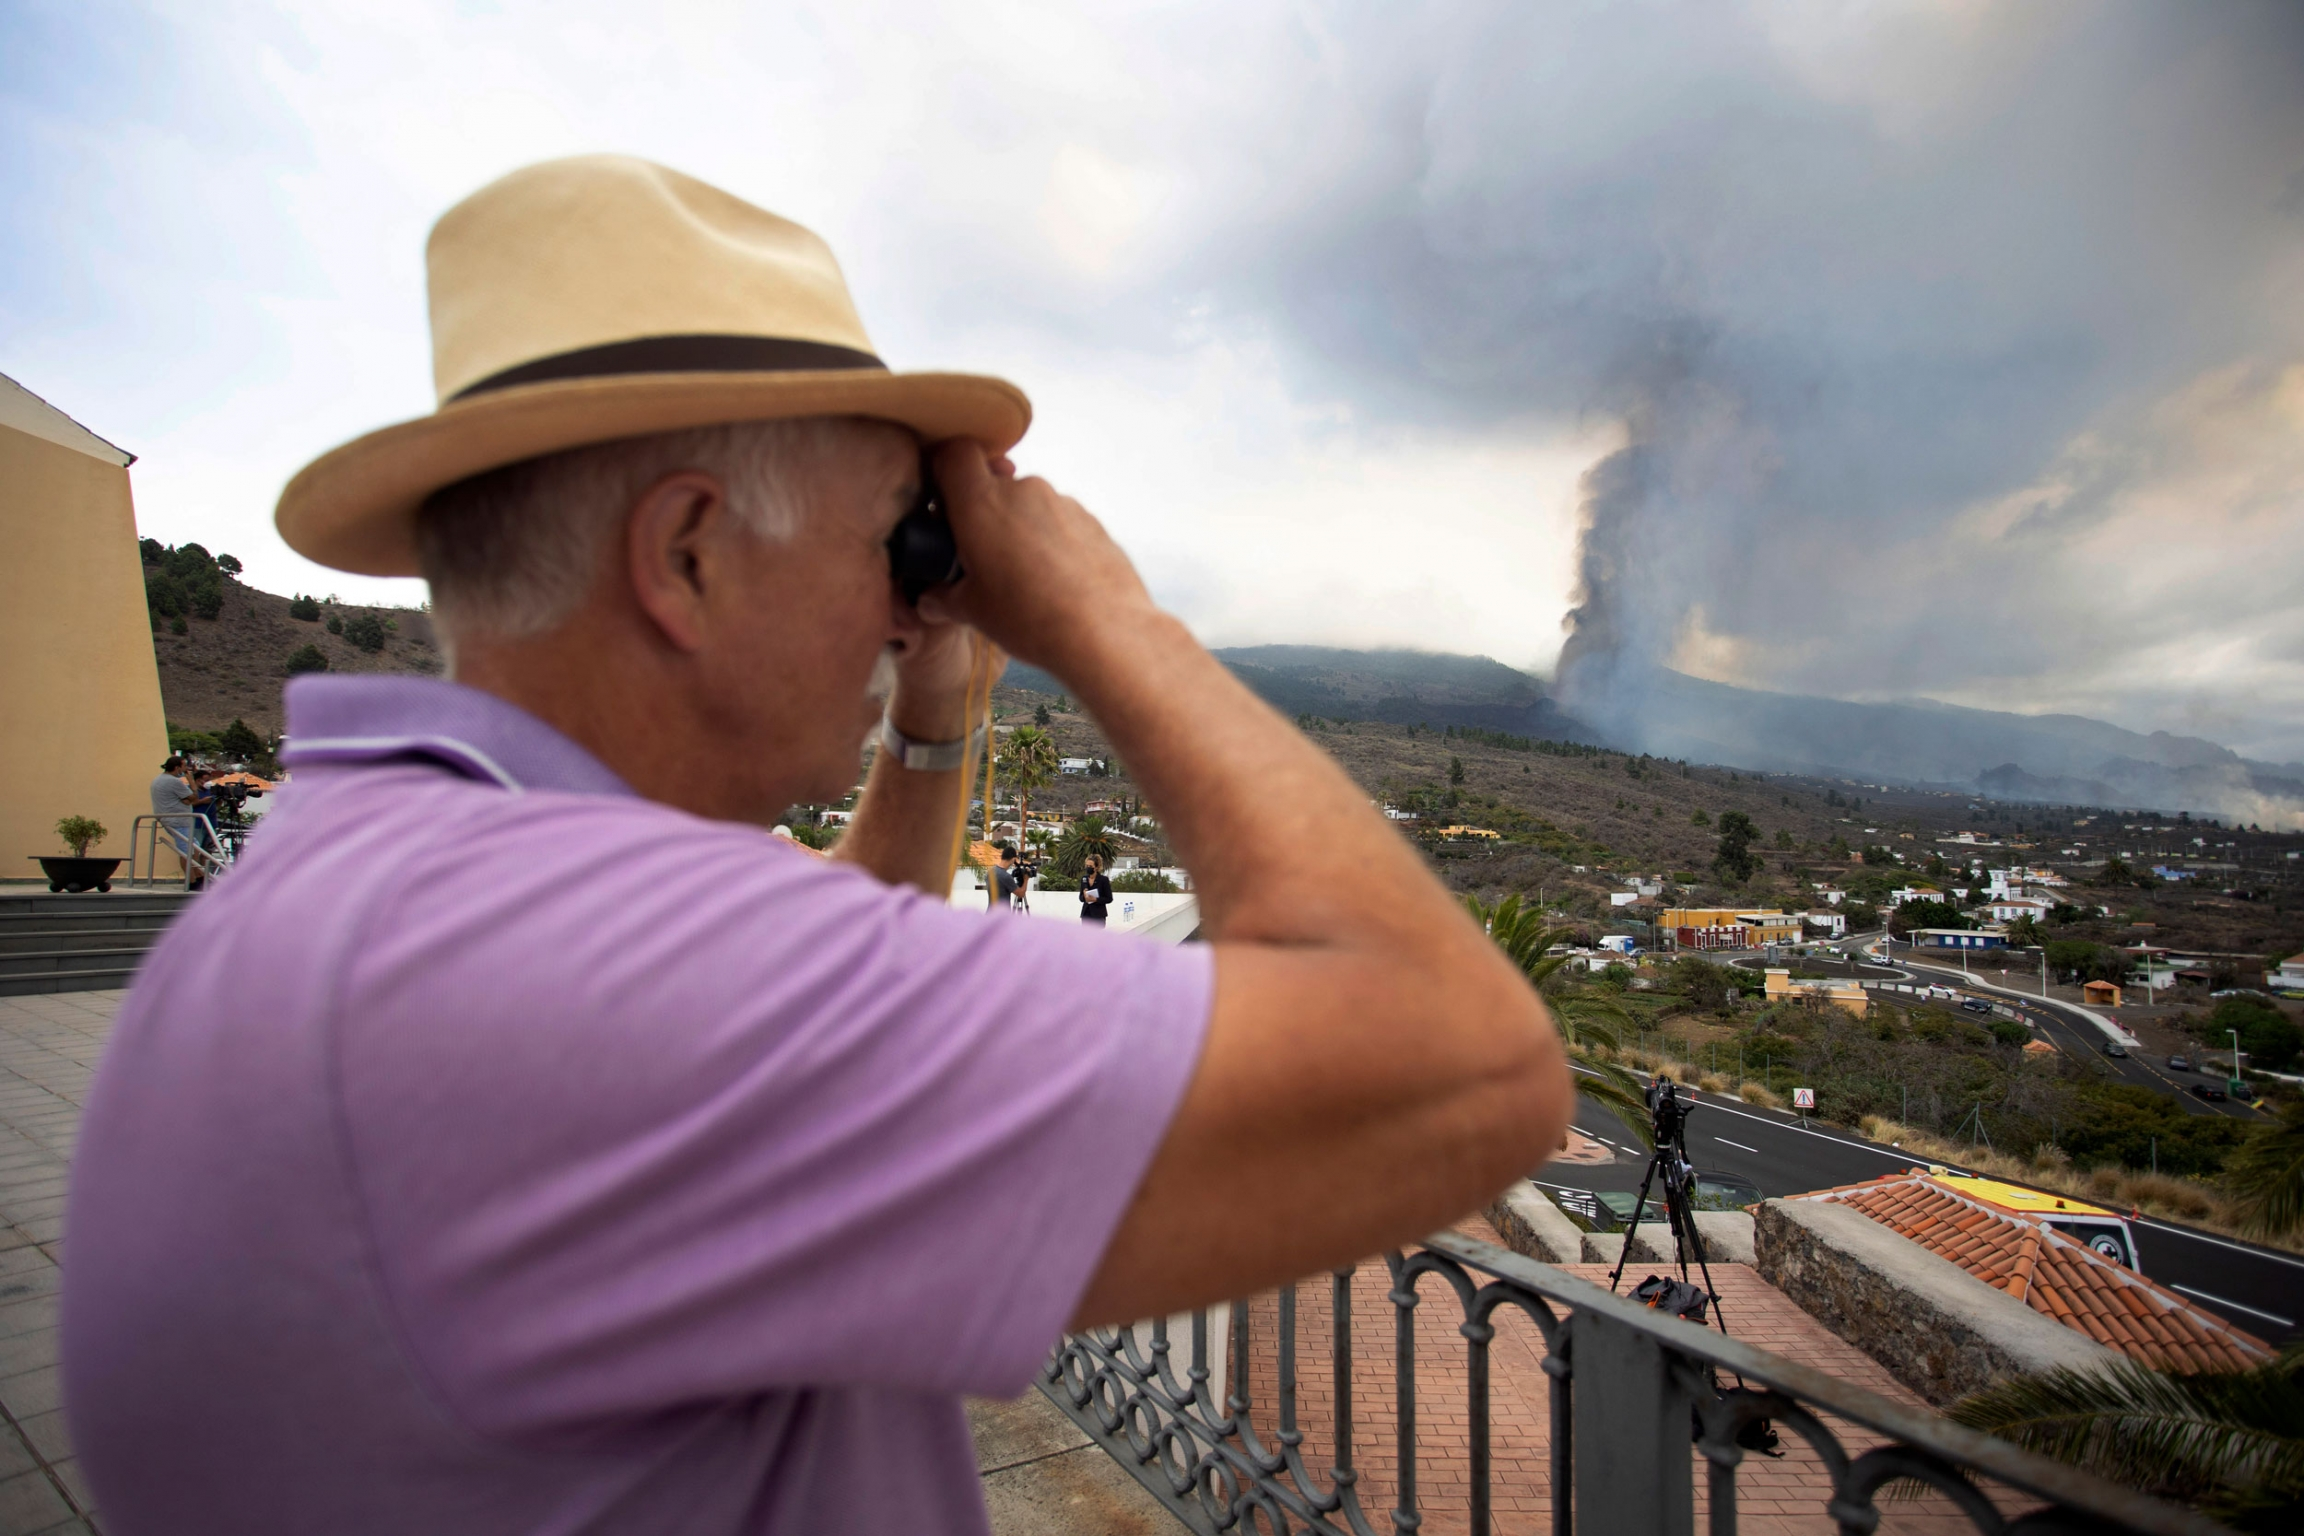 A man looks out towards the eruption of a volcano near El Paso on the island of La Palma in the Canaries, Spain, Monday, Sept. 20, 2021.